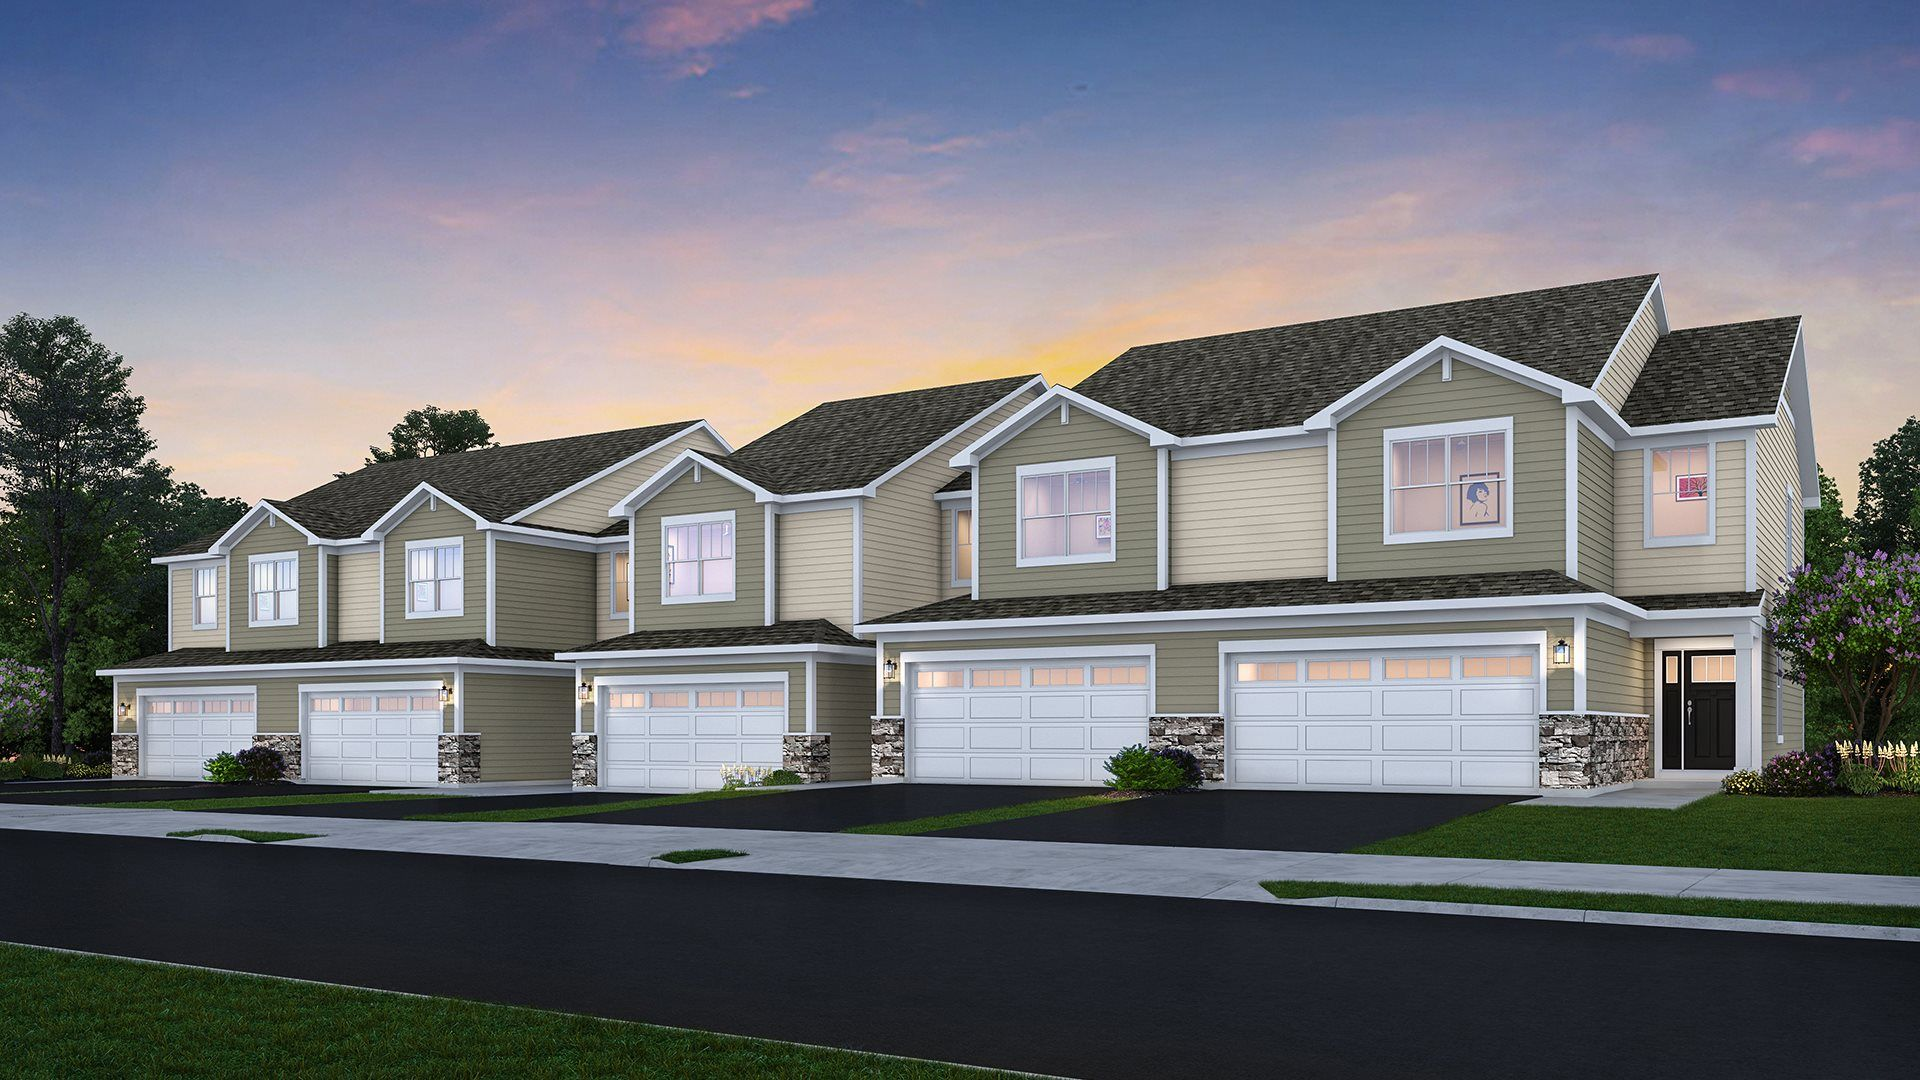 New Homes for sale in Mundelein, Illinois by Lennar featuring our Townhome Collection.